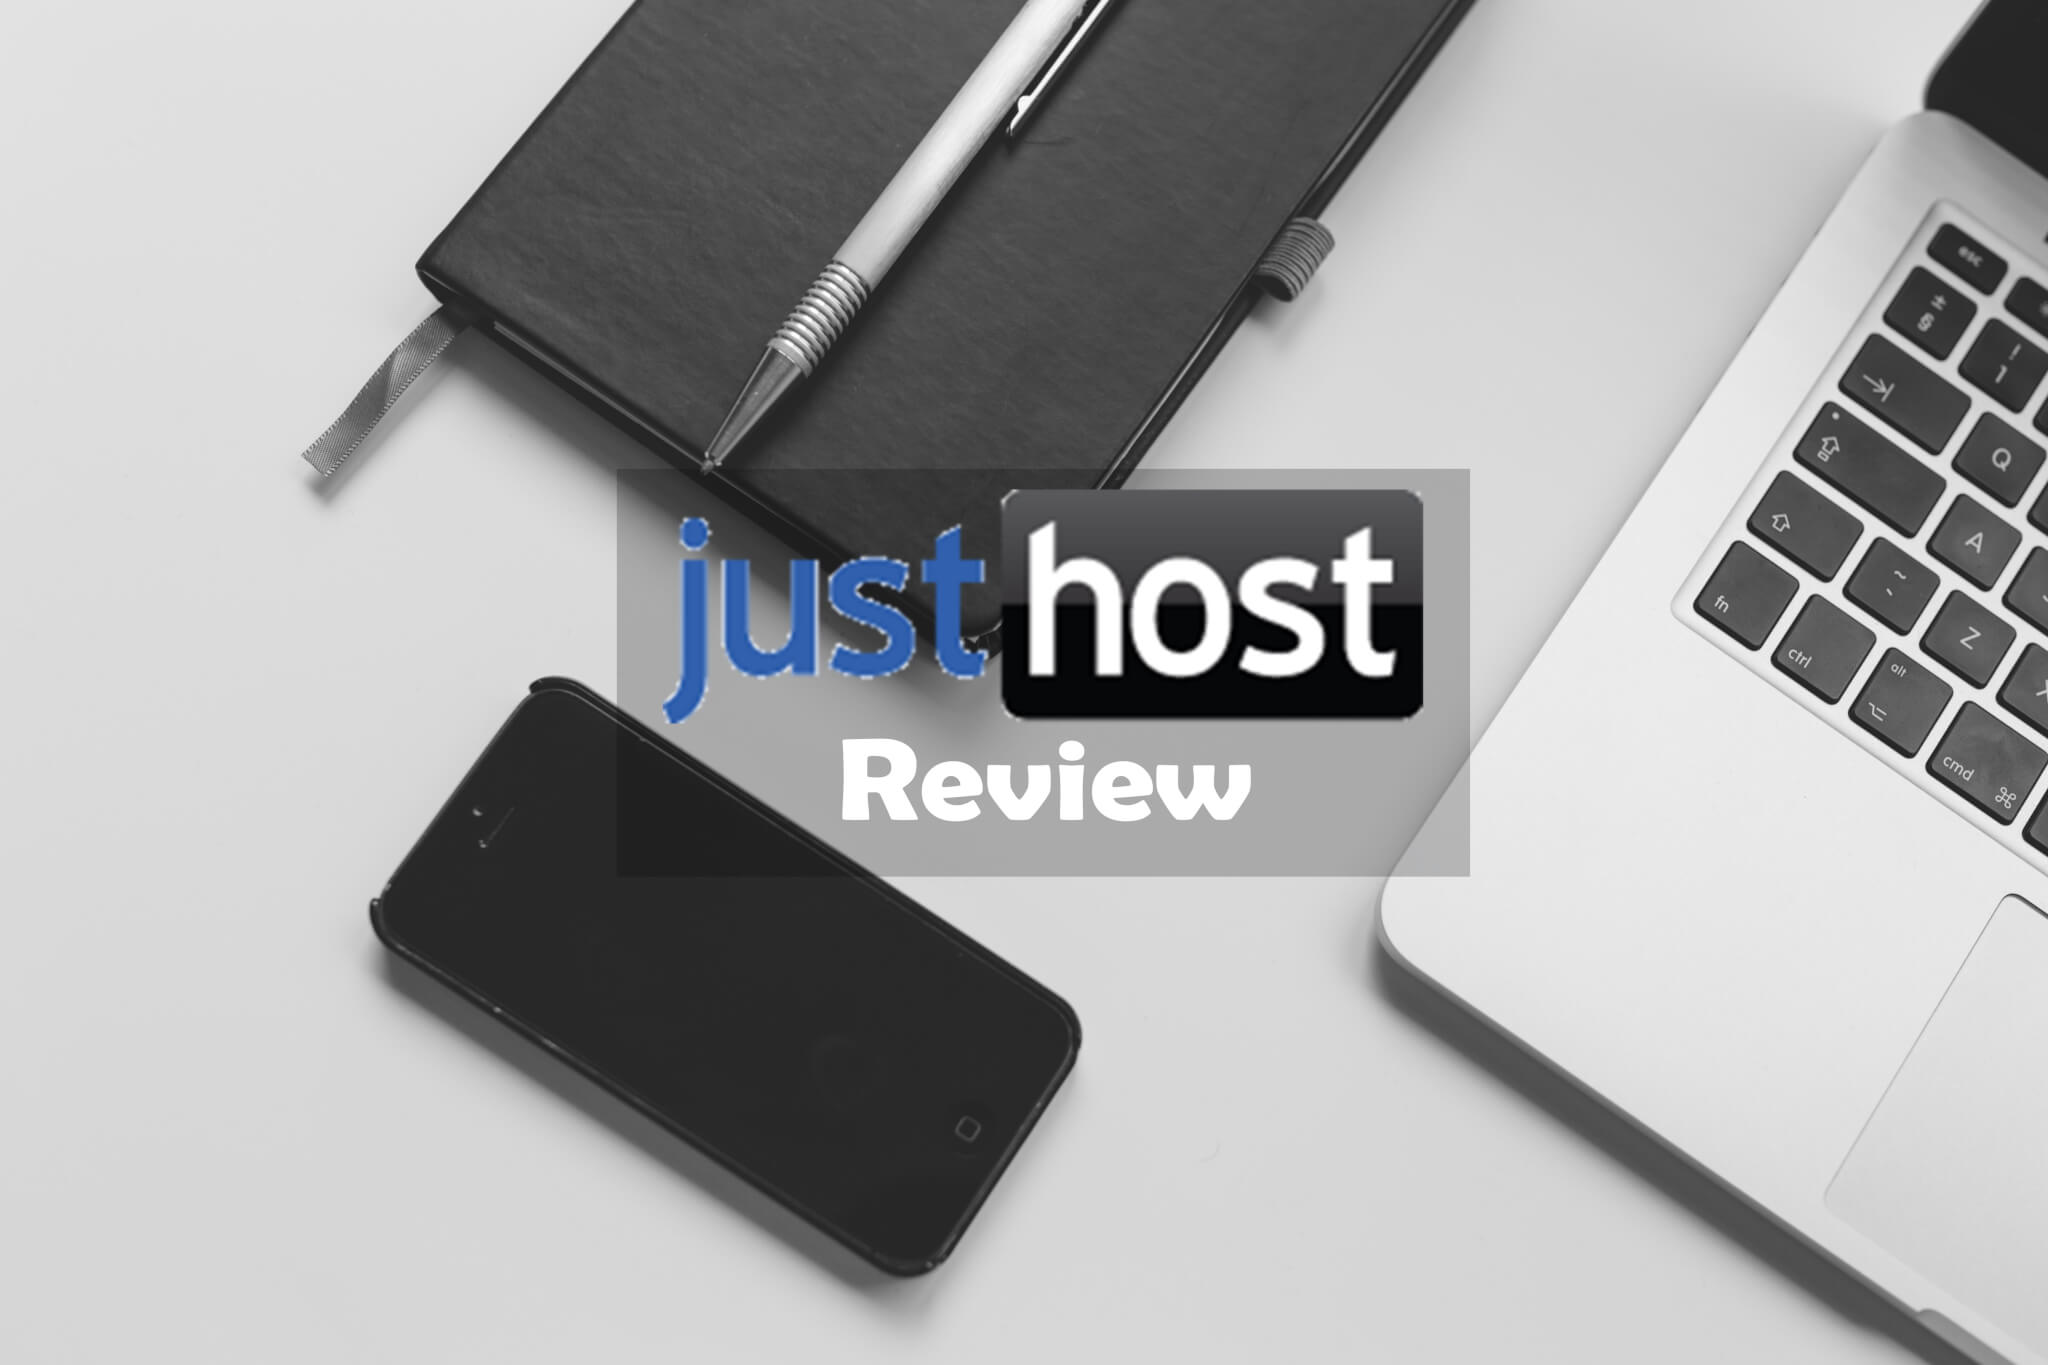 Just Host Review